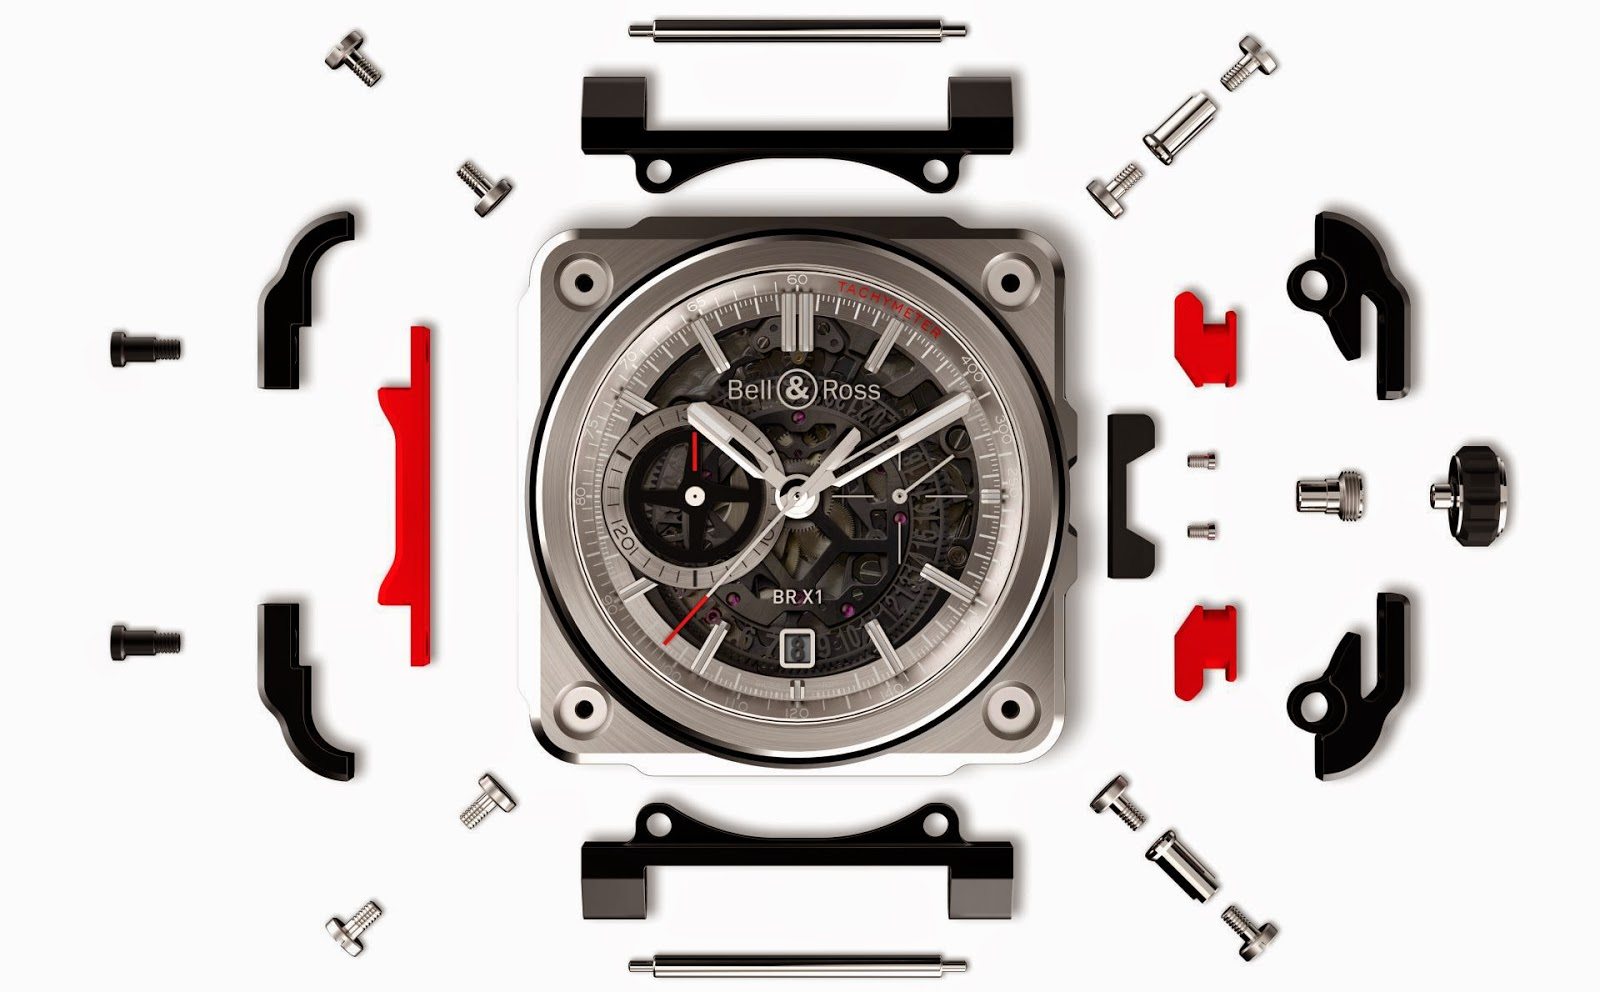 Bell & Ross BR-X1 - The Hypersonic Chronograph -Exploded View